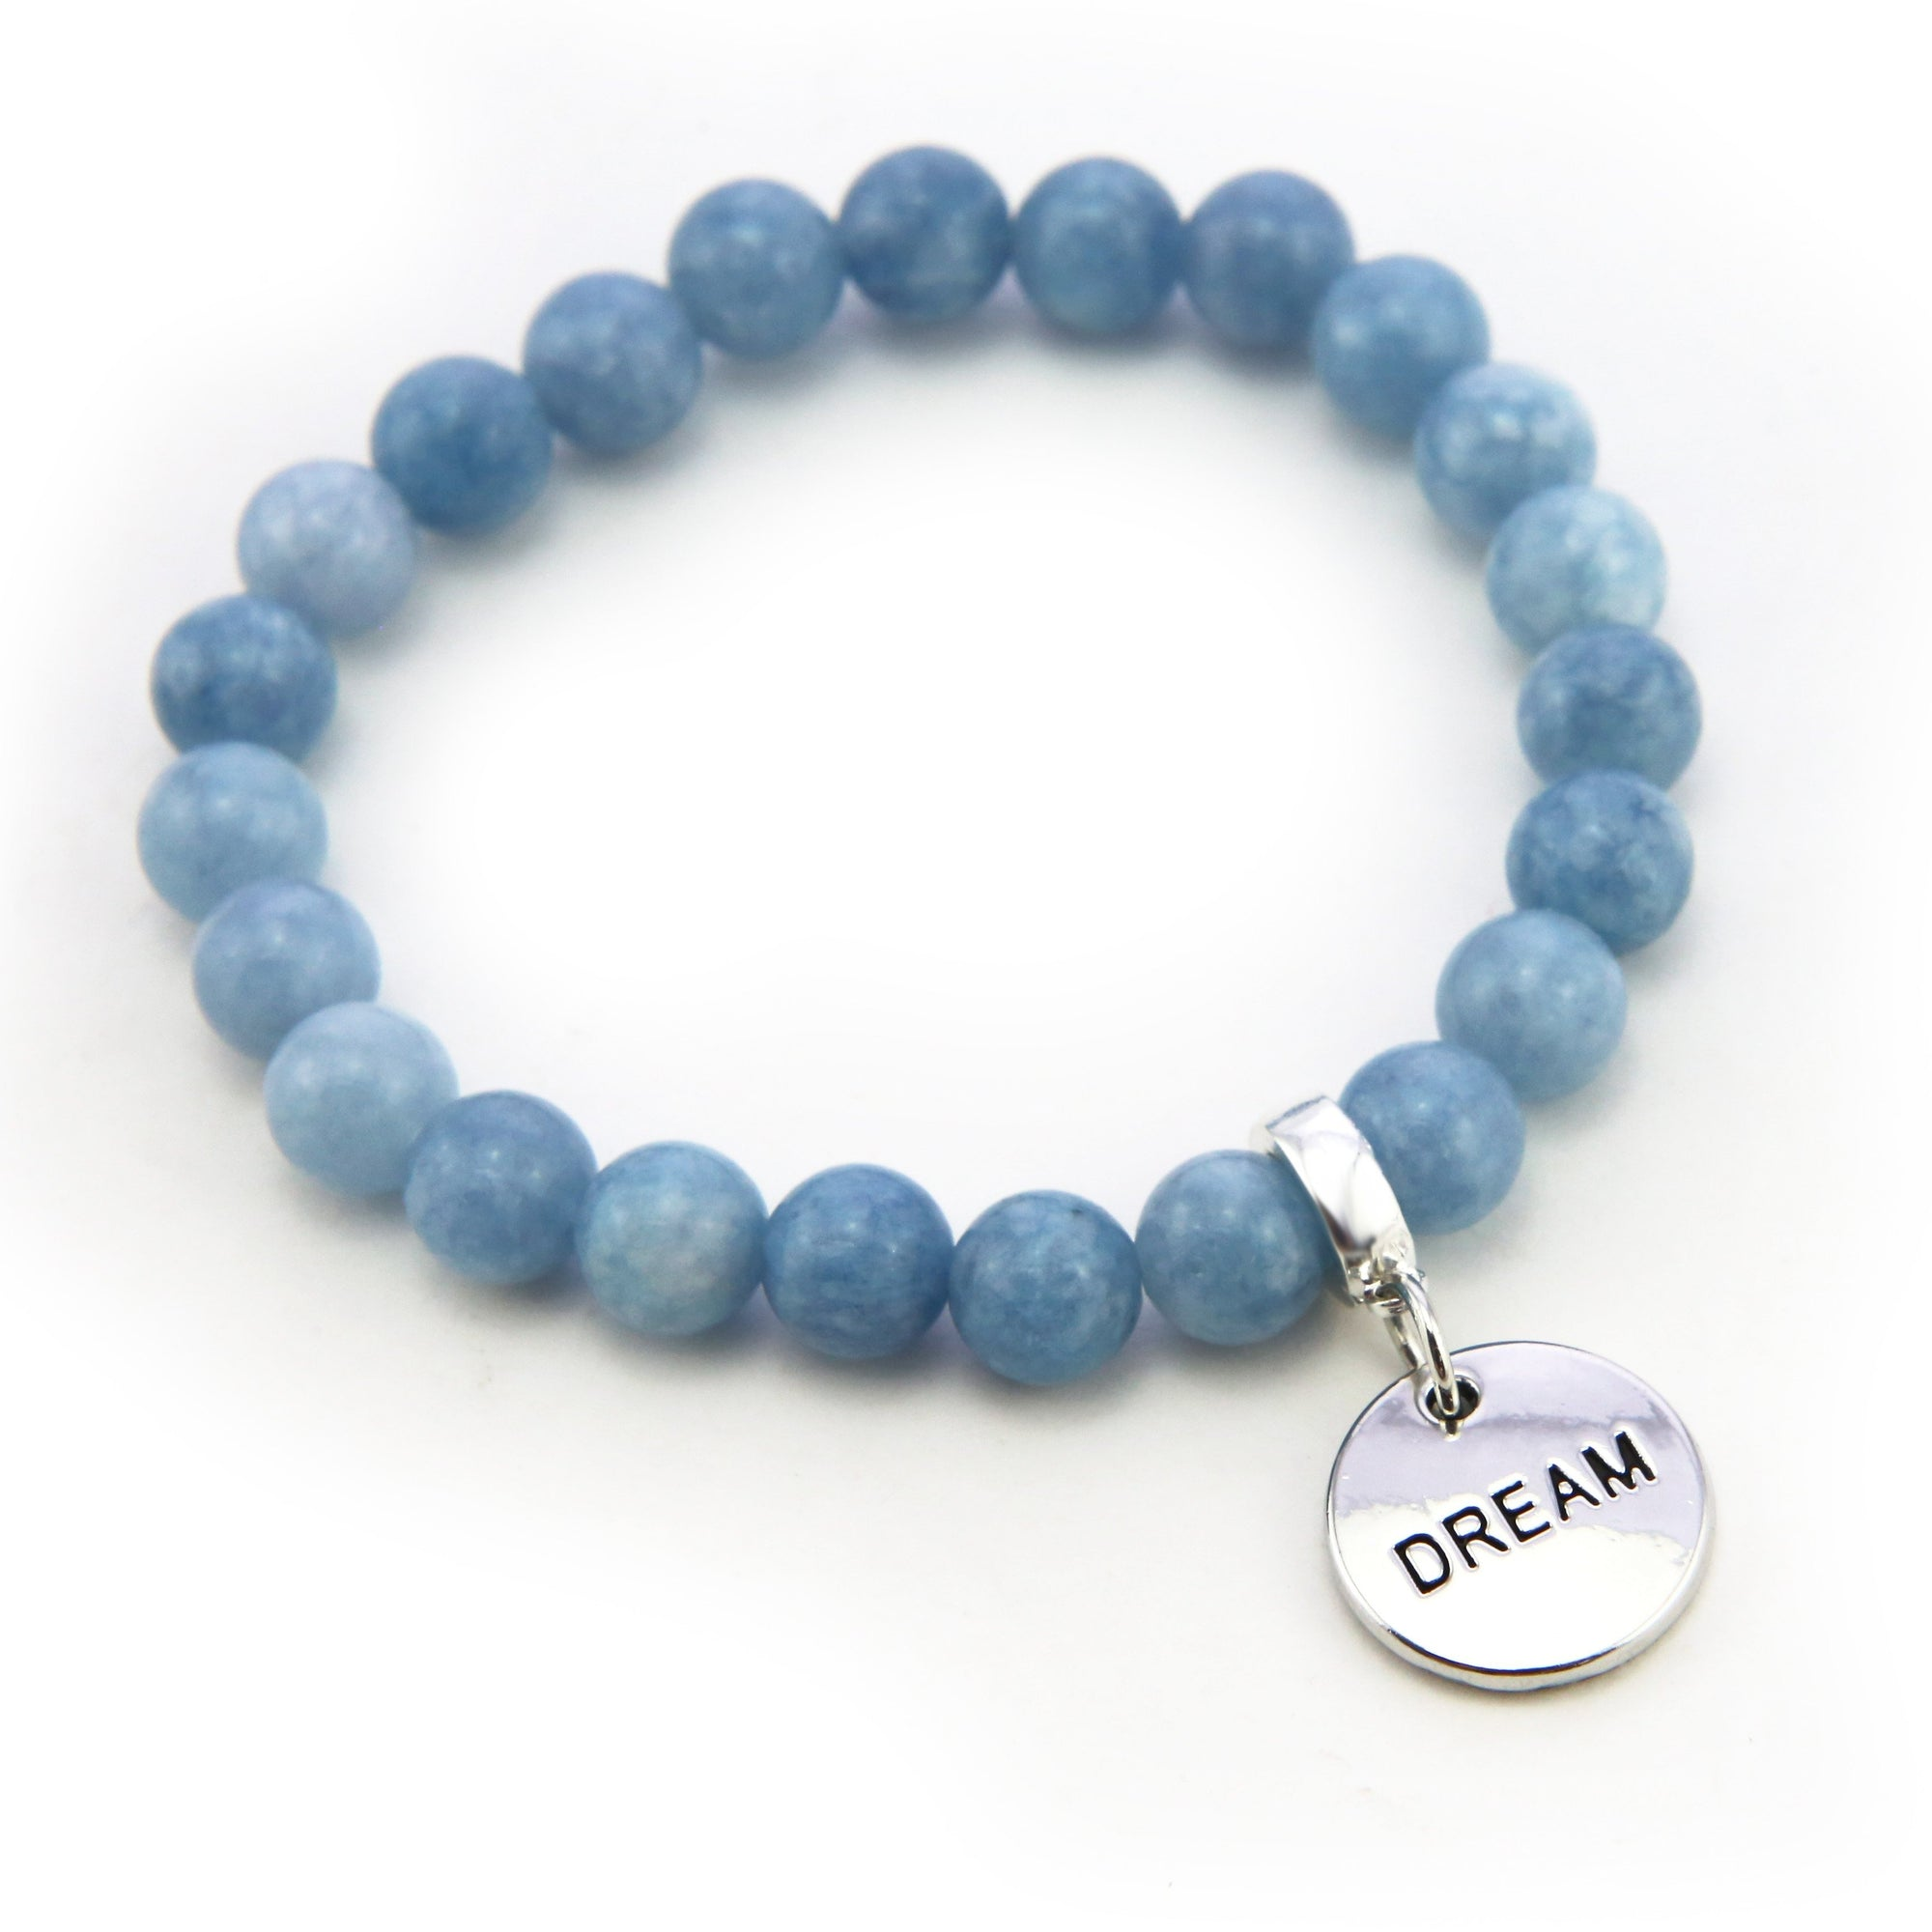 Stone Bracelet 8mm Bead Stormy Sea Blue Agate - With Silver Word Charms